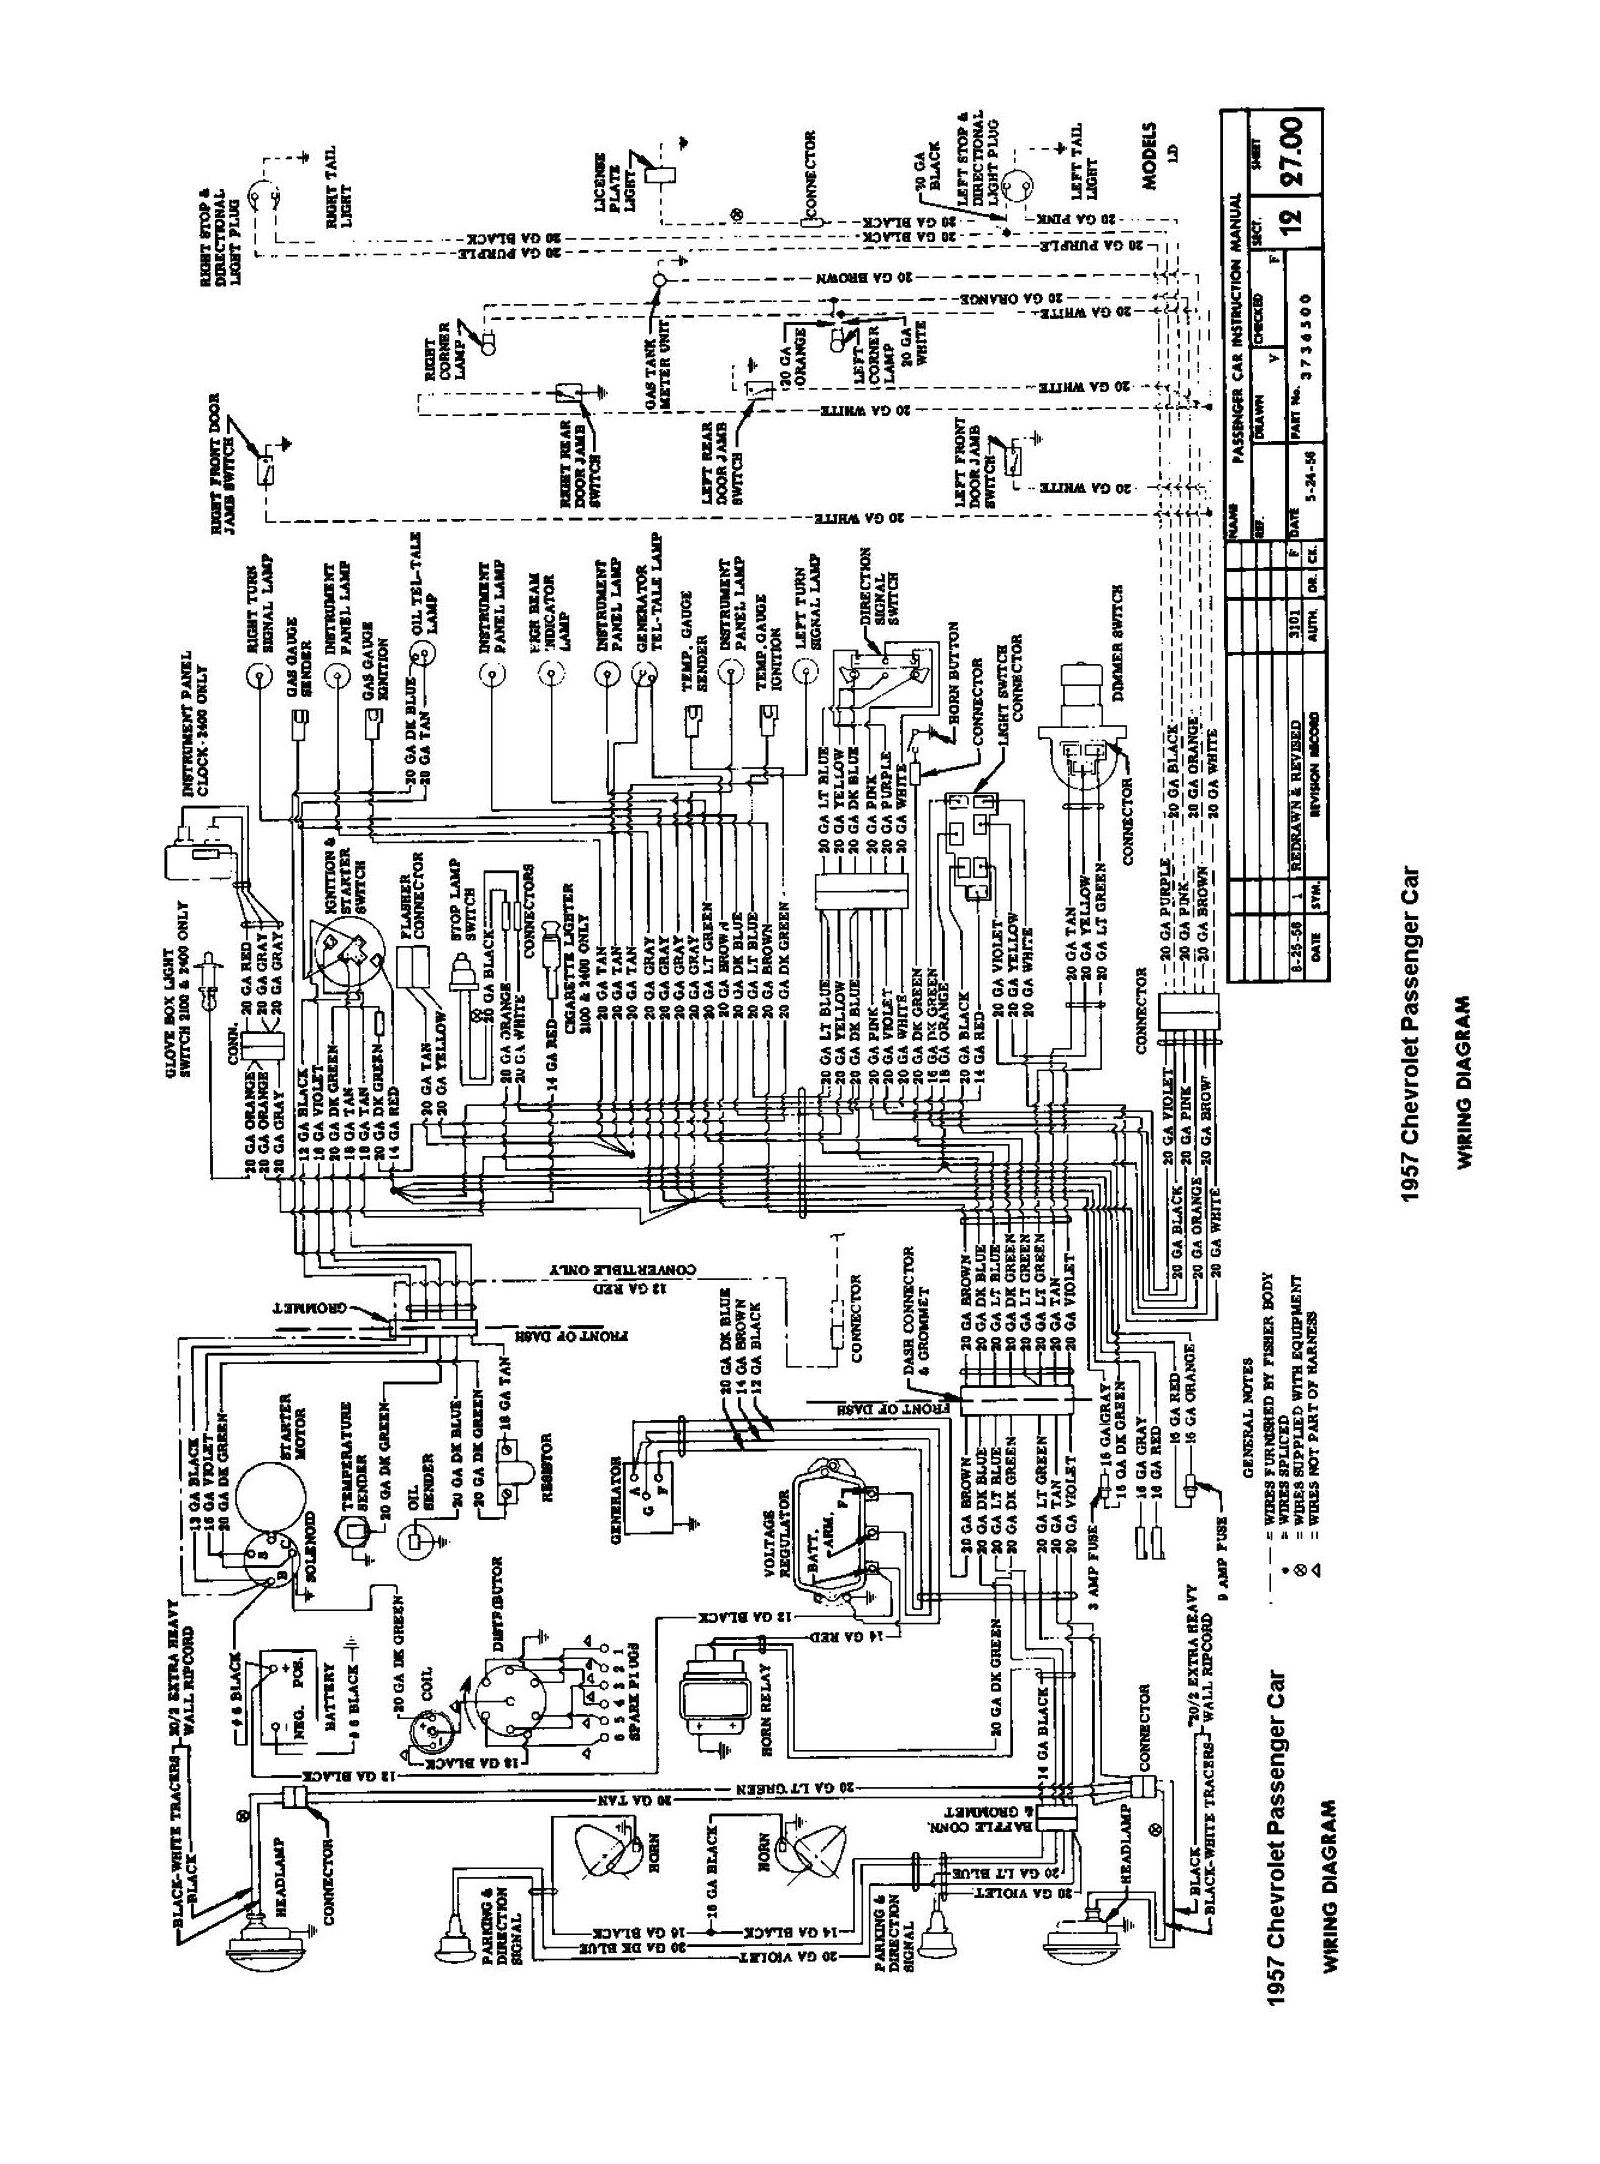 57car chevy wiring diagrams chevy radio wiring \u2022 wiring diagrams j GM Factory Wiring Diagram at reclaimingppi.co